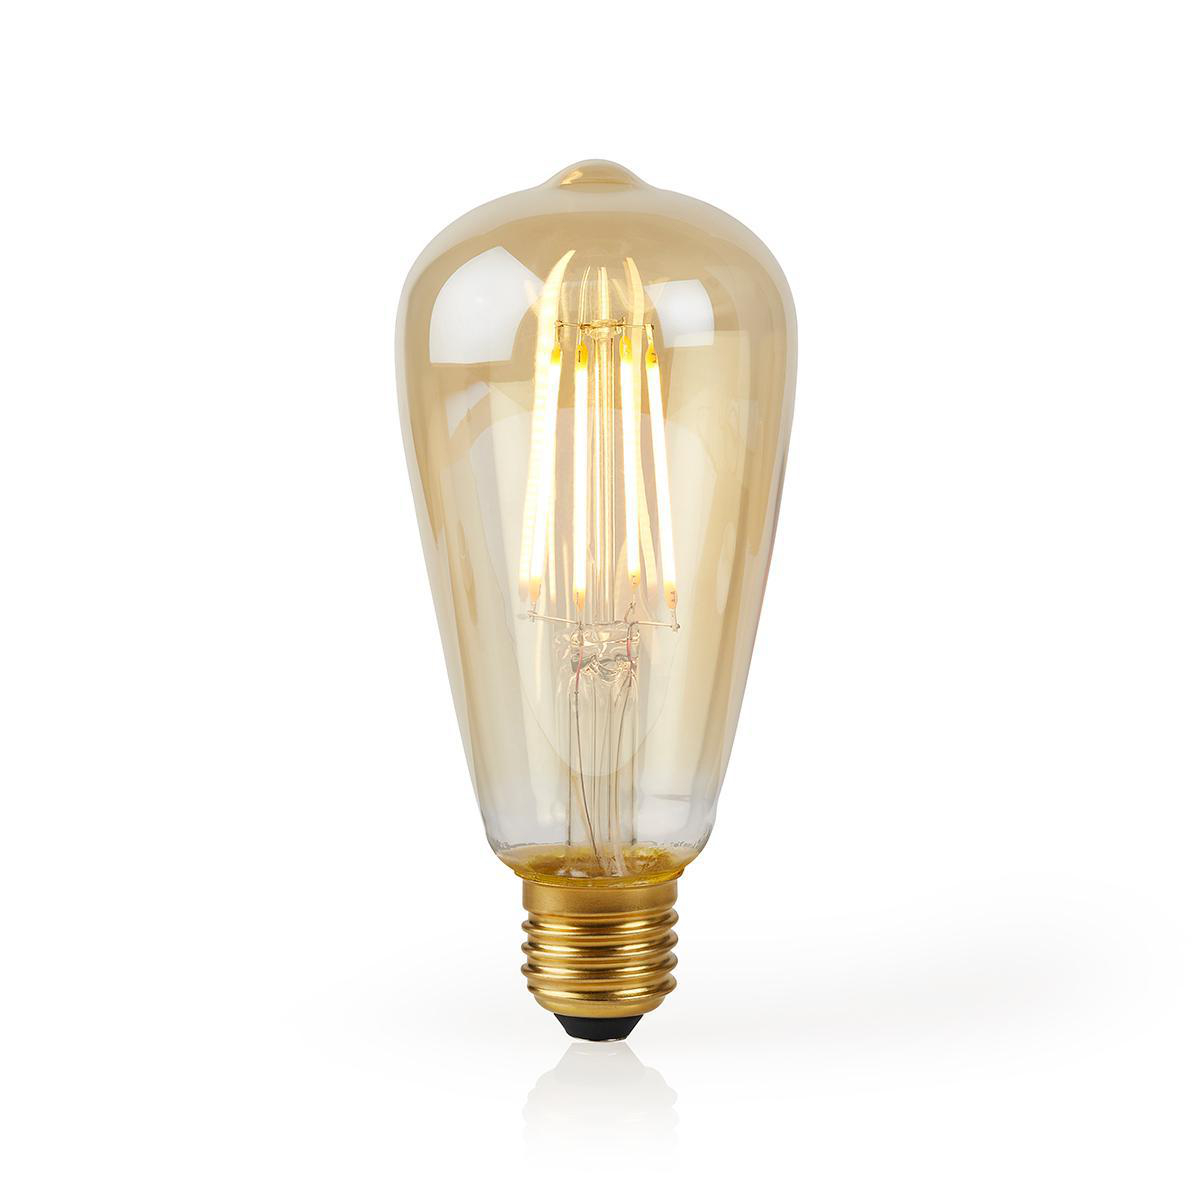 Slimme Wifi Edison filament lamp E27 - 5 watt- warm wit - lamp aan